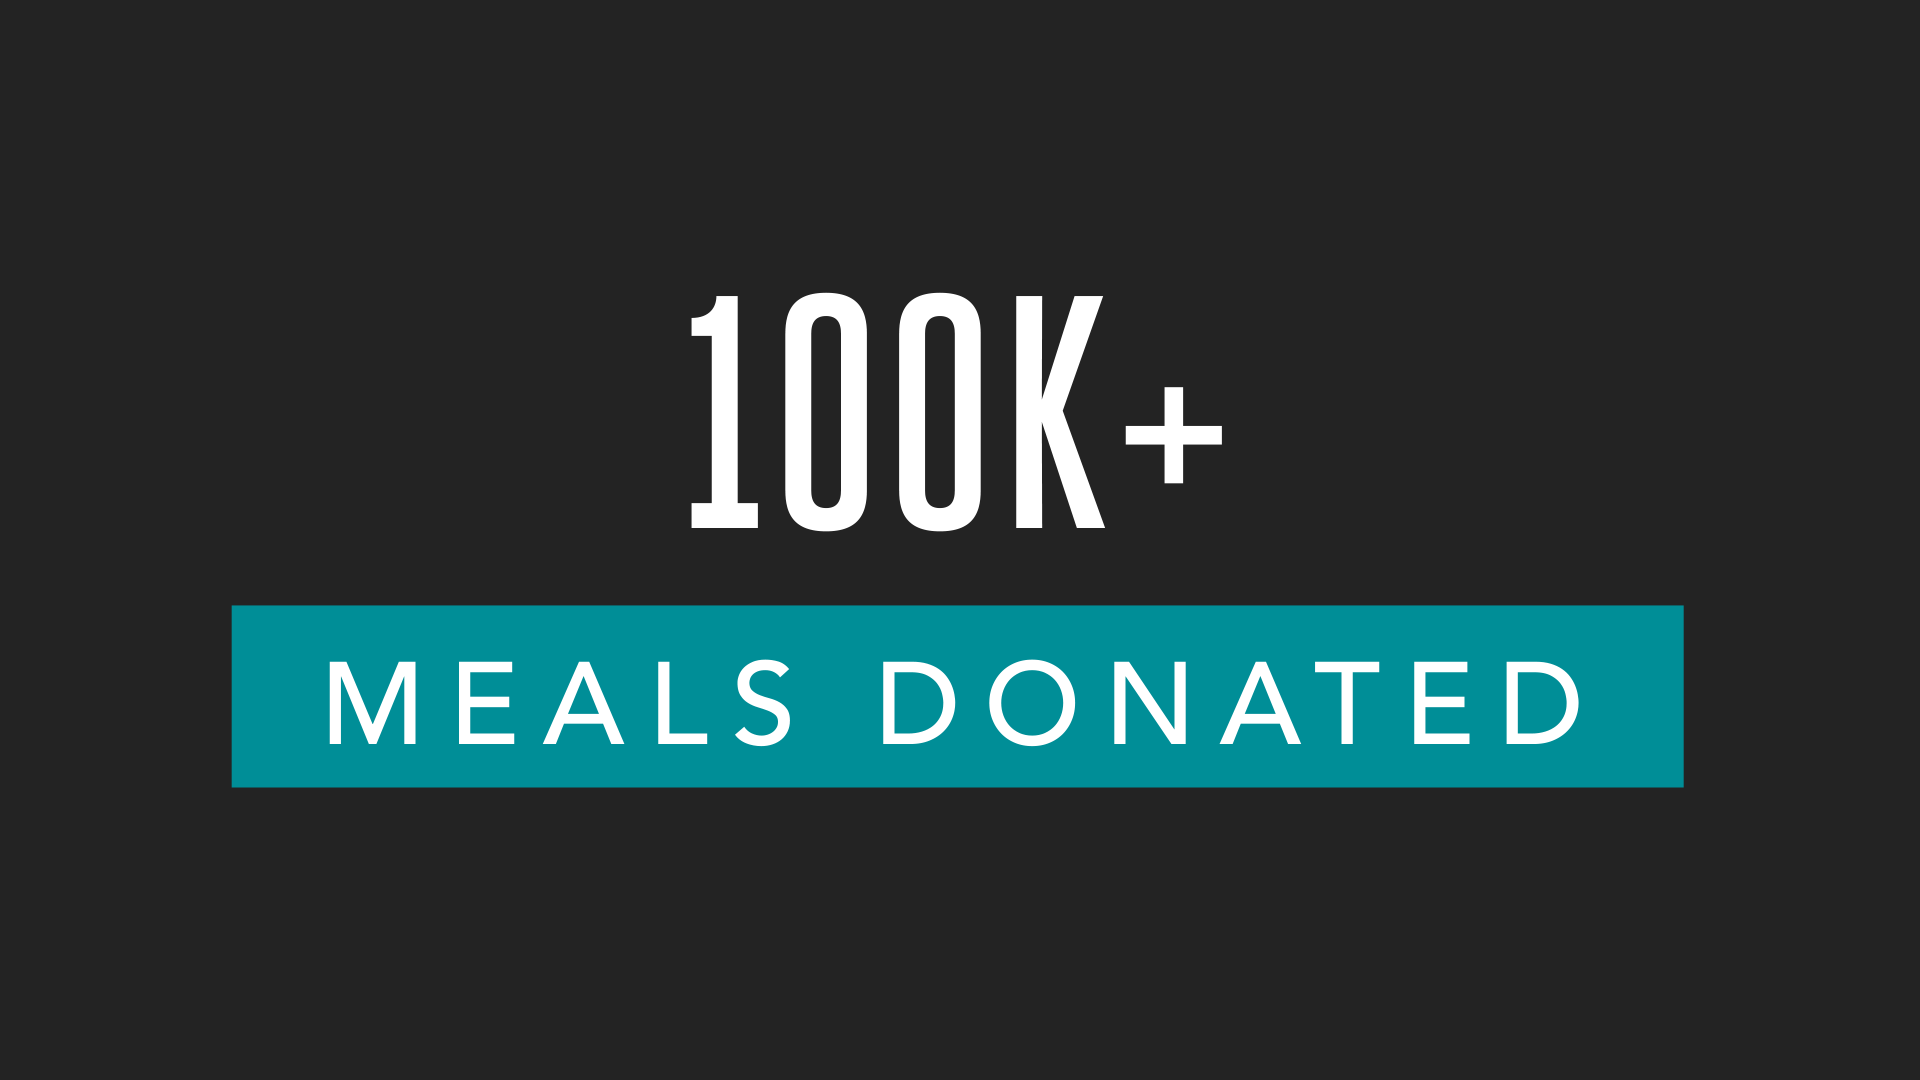 Graphic: 100k+ Meals Donated